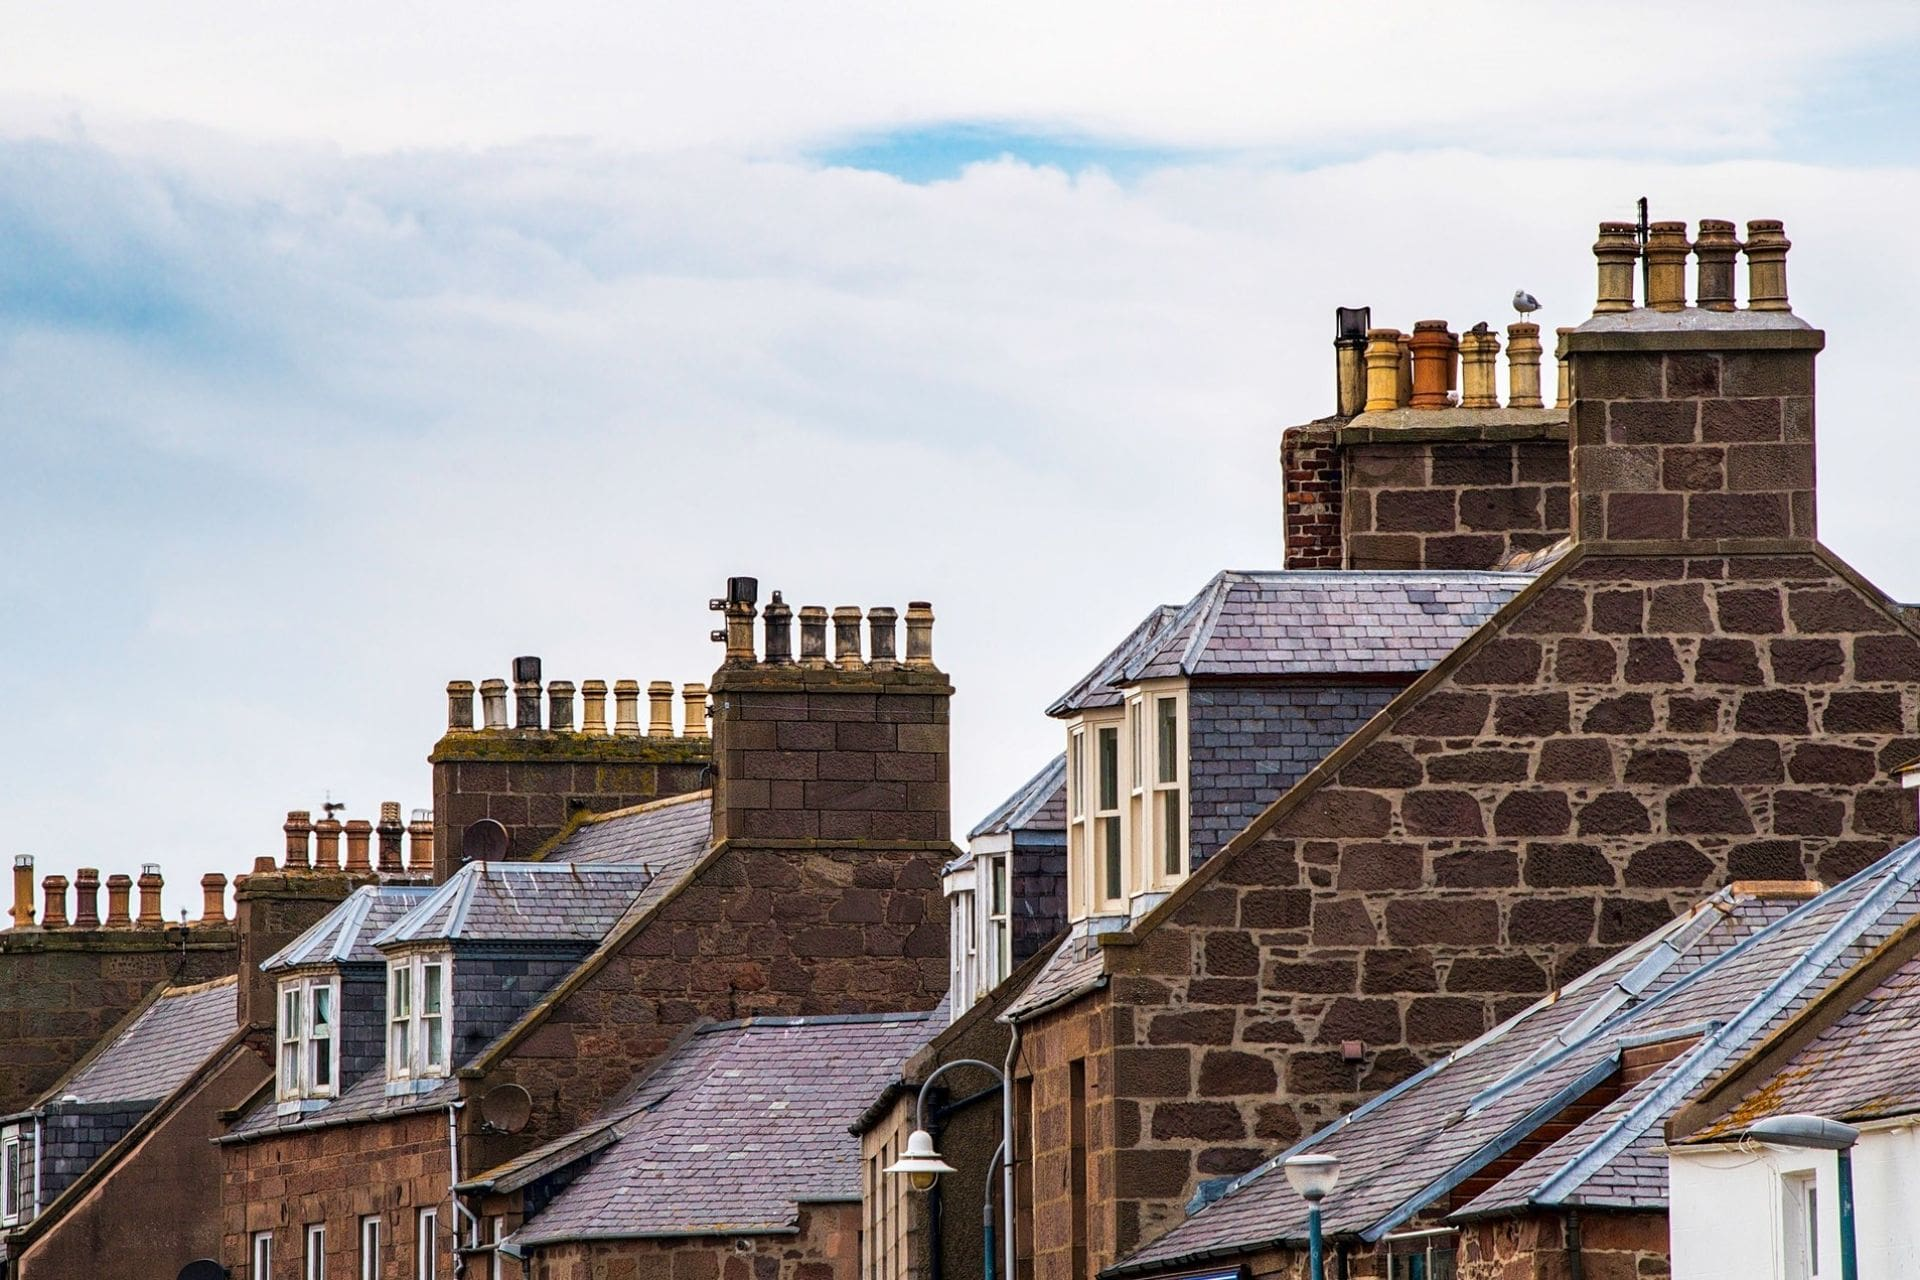 roofs-and-chimneys-of-row-of-terraced-houses